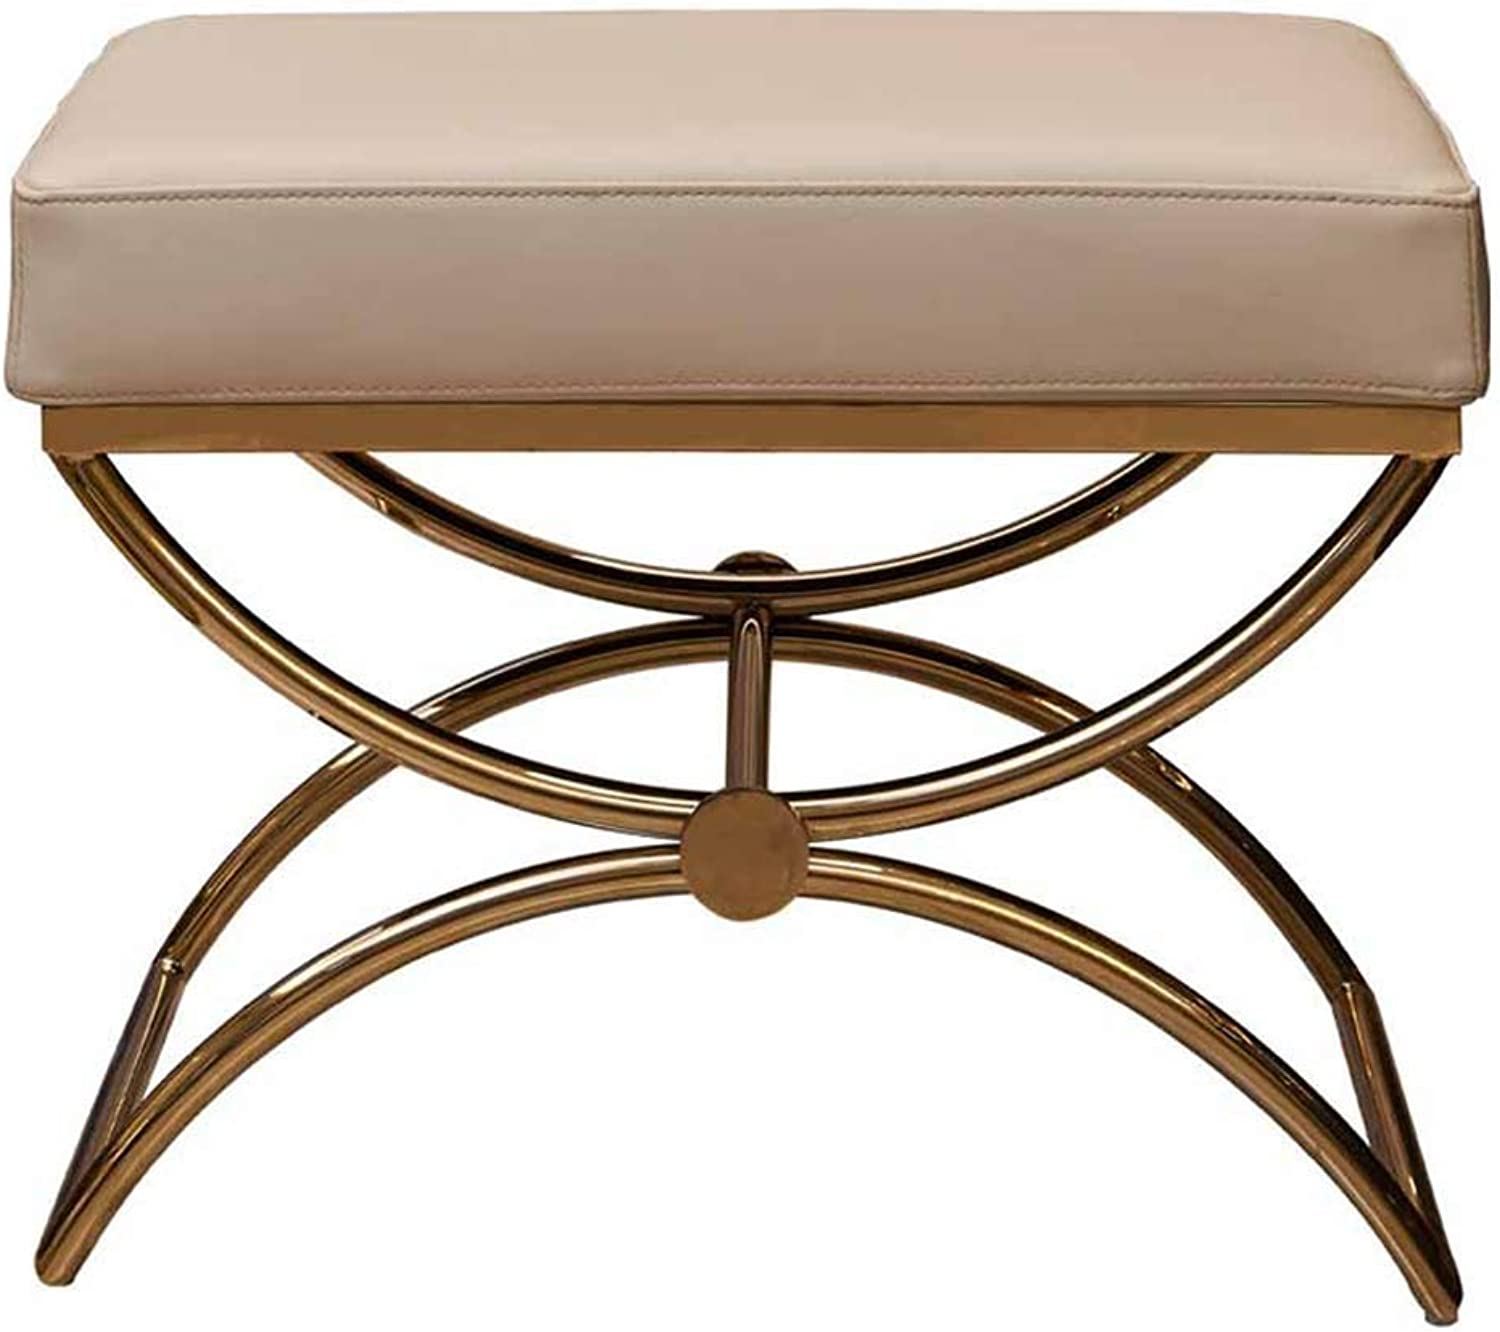 Stool Nordic Modern Home Change shoes Stool Stainless Steel Sofa Stool Multi-Function Makeup Stool gold 55  42  40cm CONGMING (color   gold, Size   55  42  40cm)